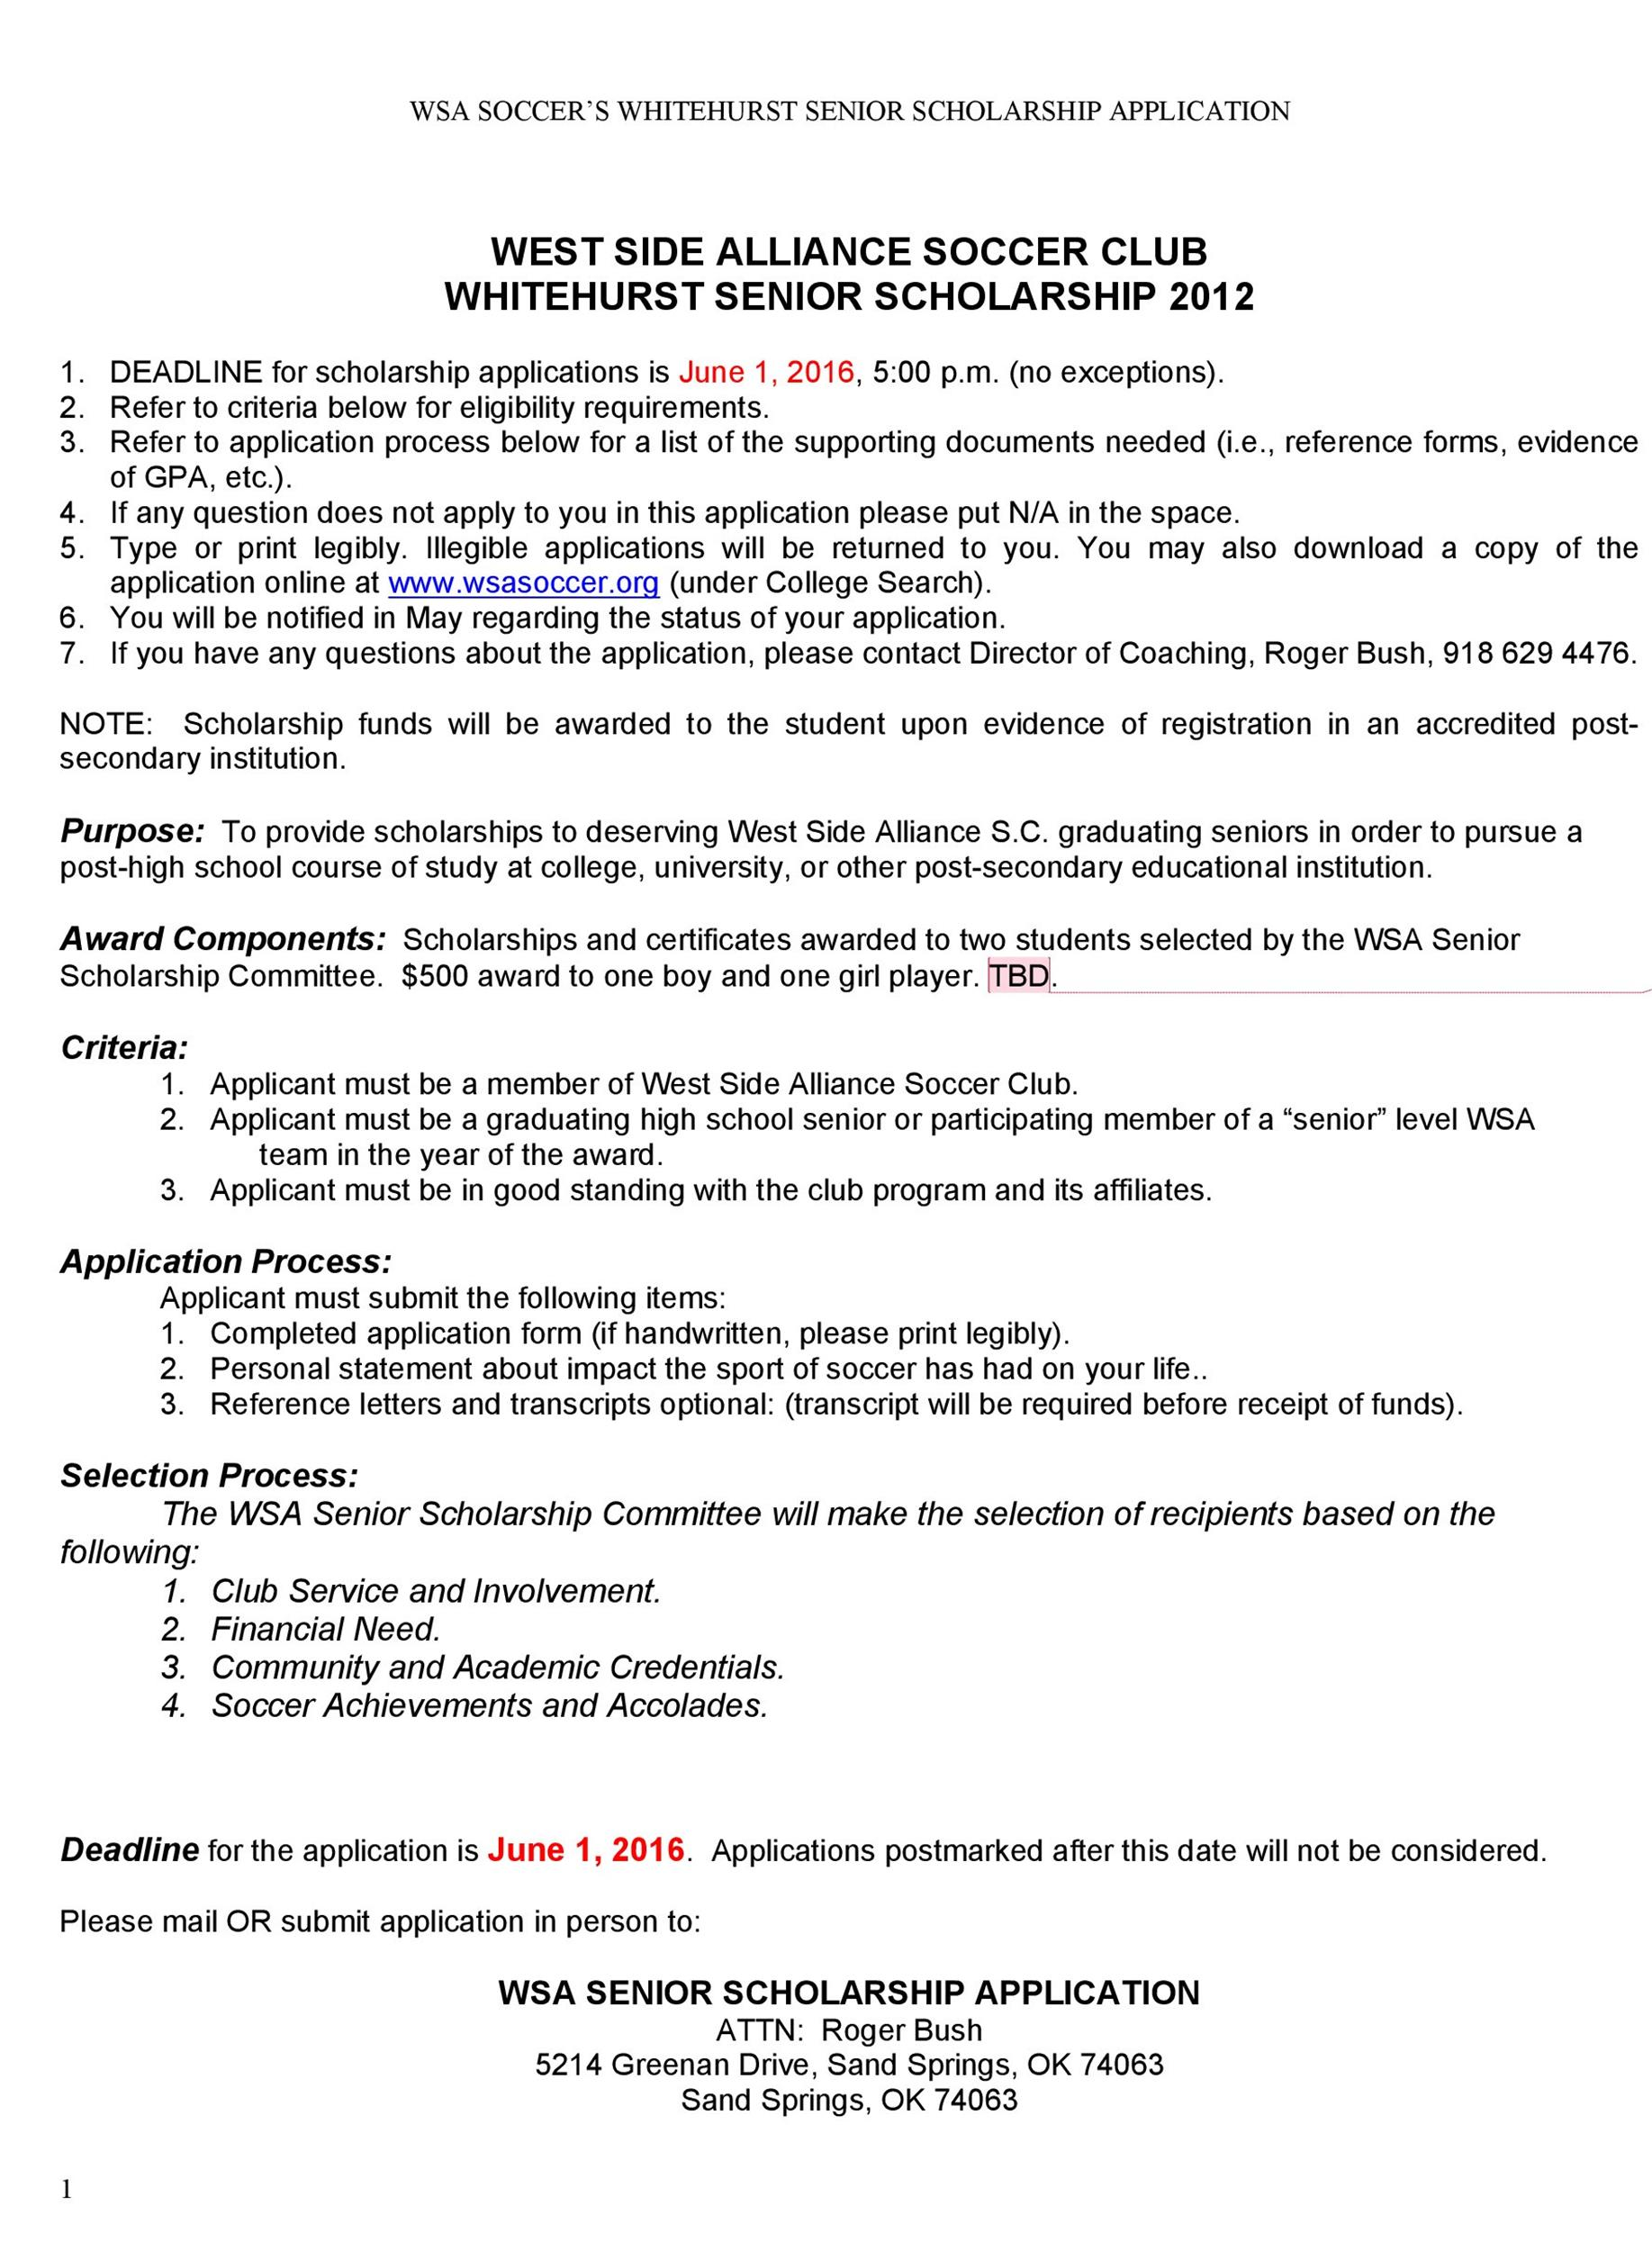 Free Scholarship Application Template 48